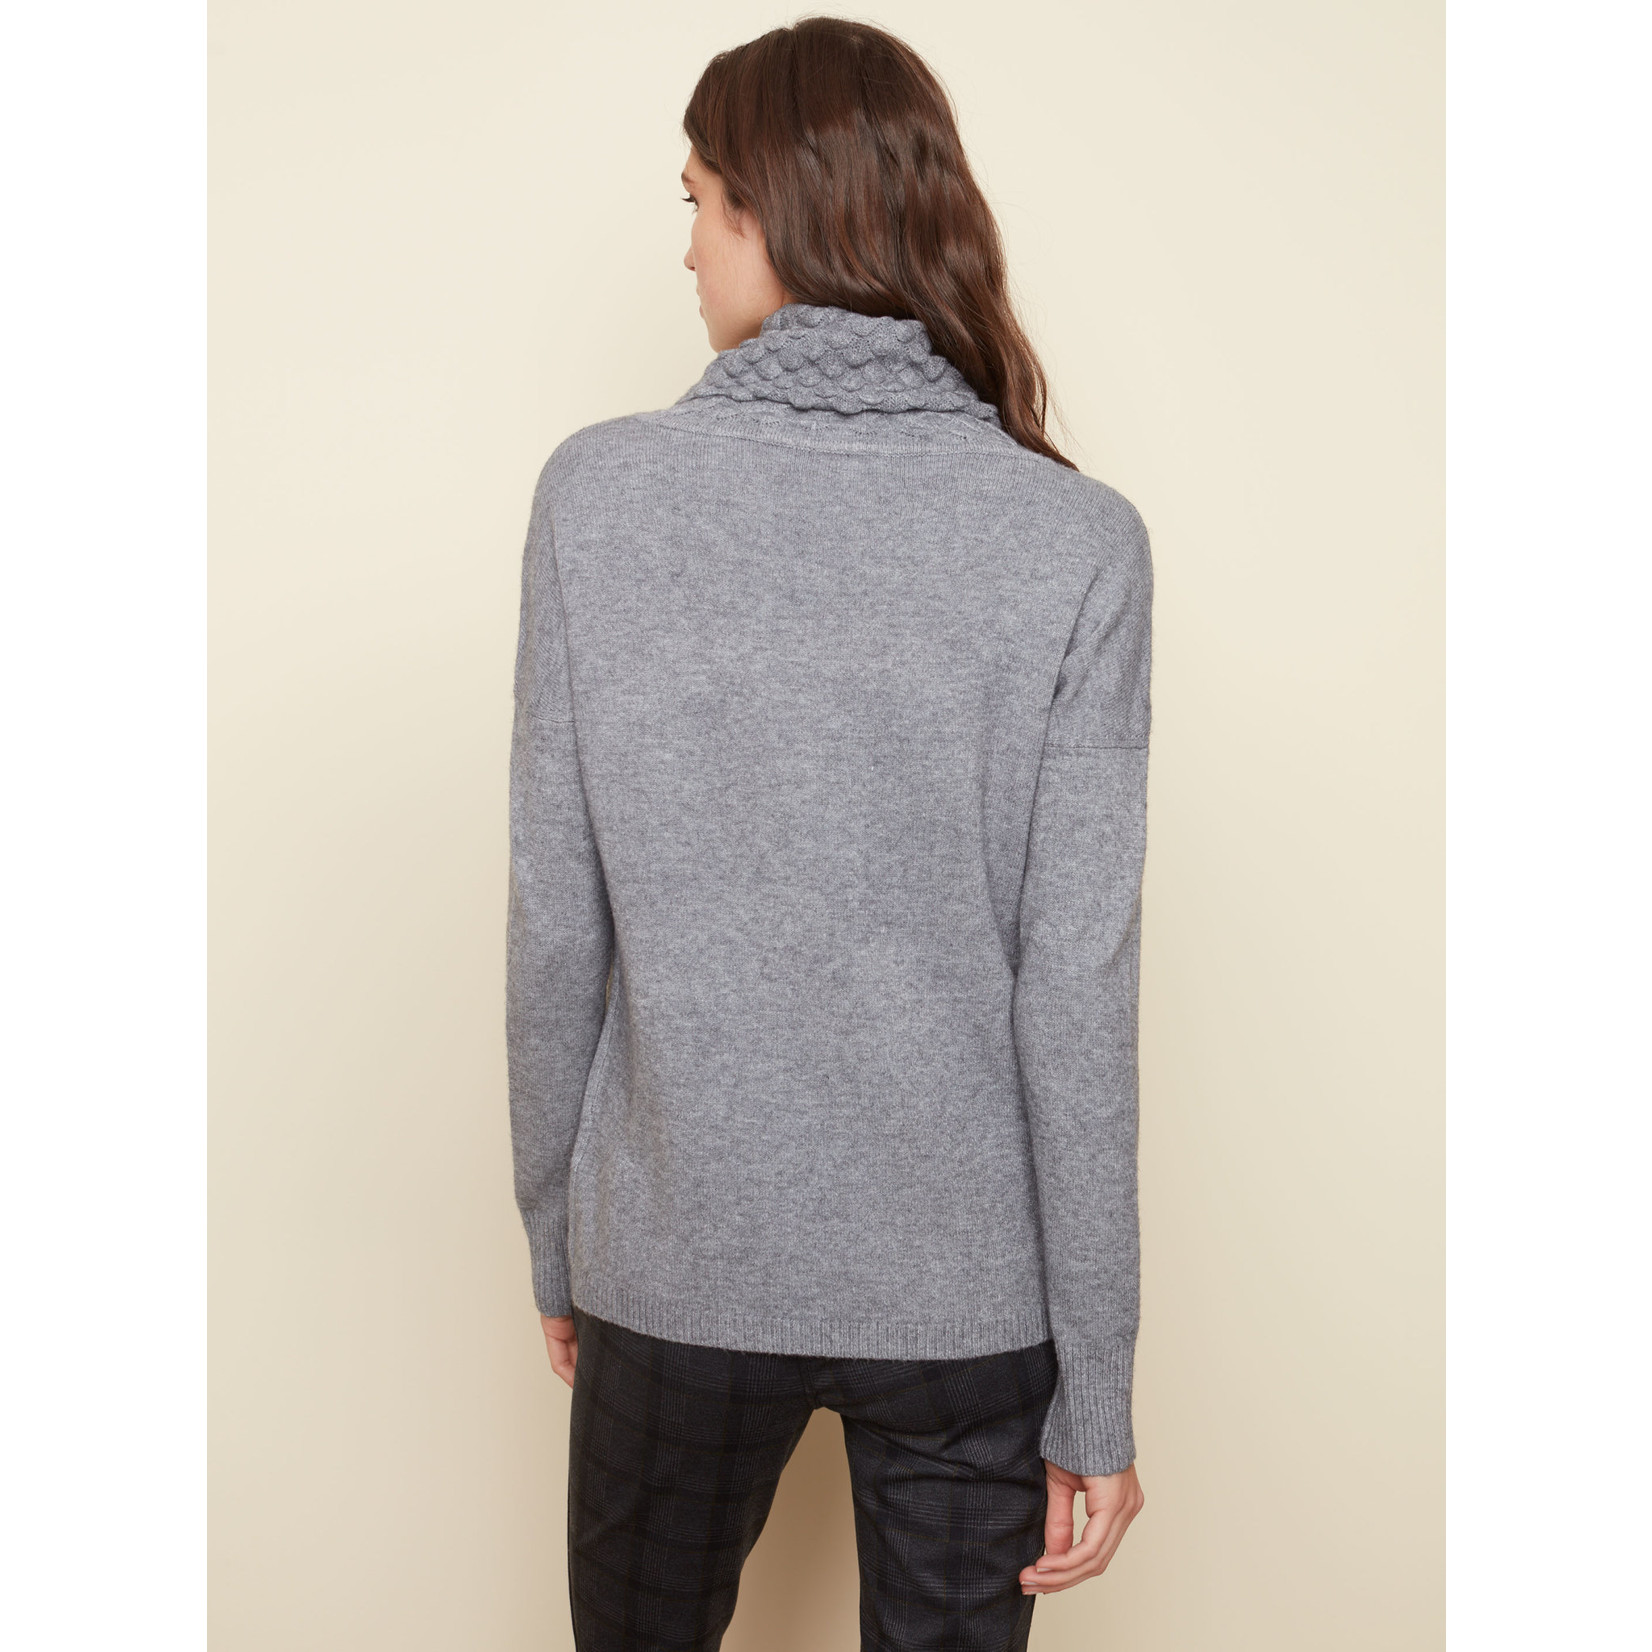 Charlie B Long Sleeve Cowl Neck With Pockets